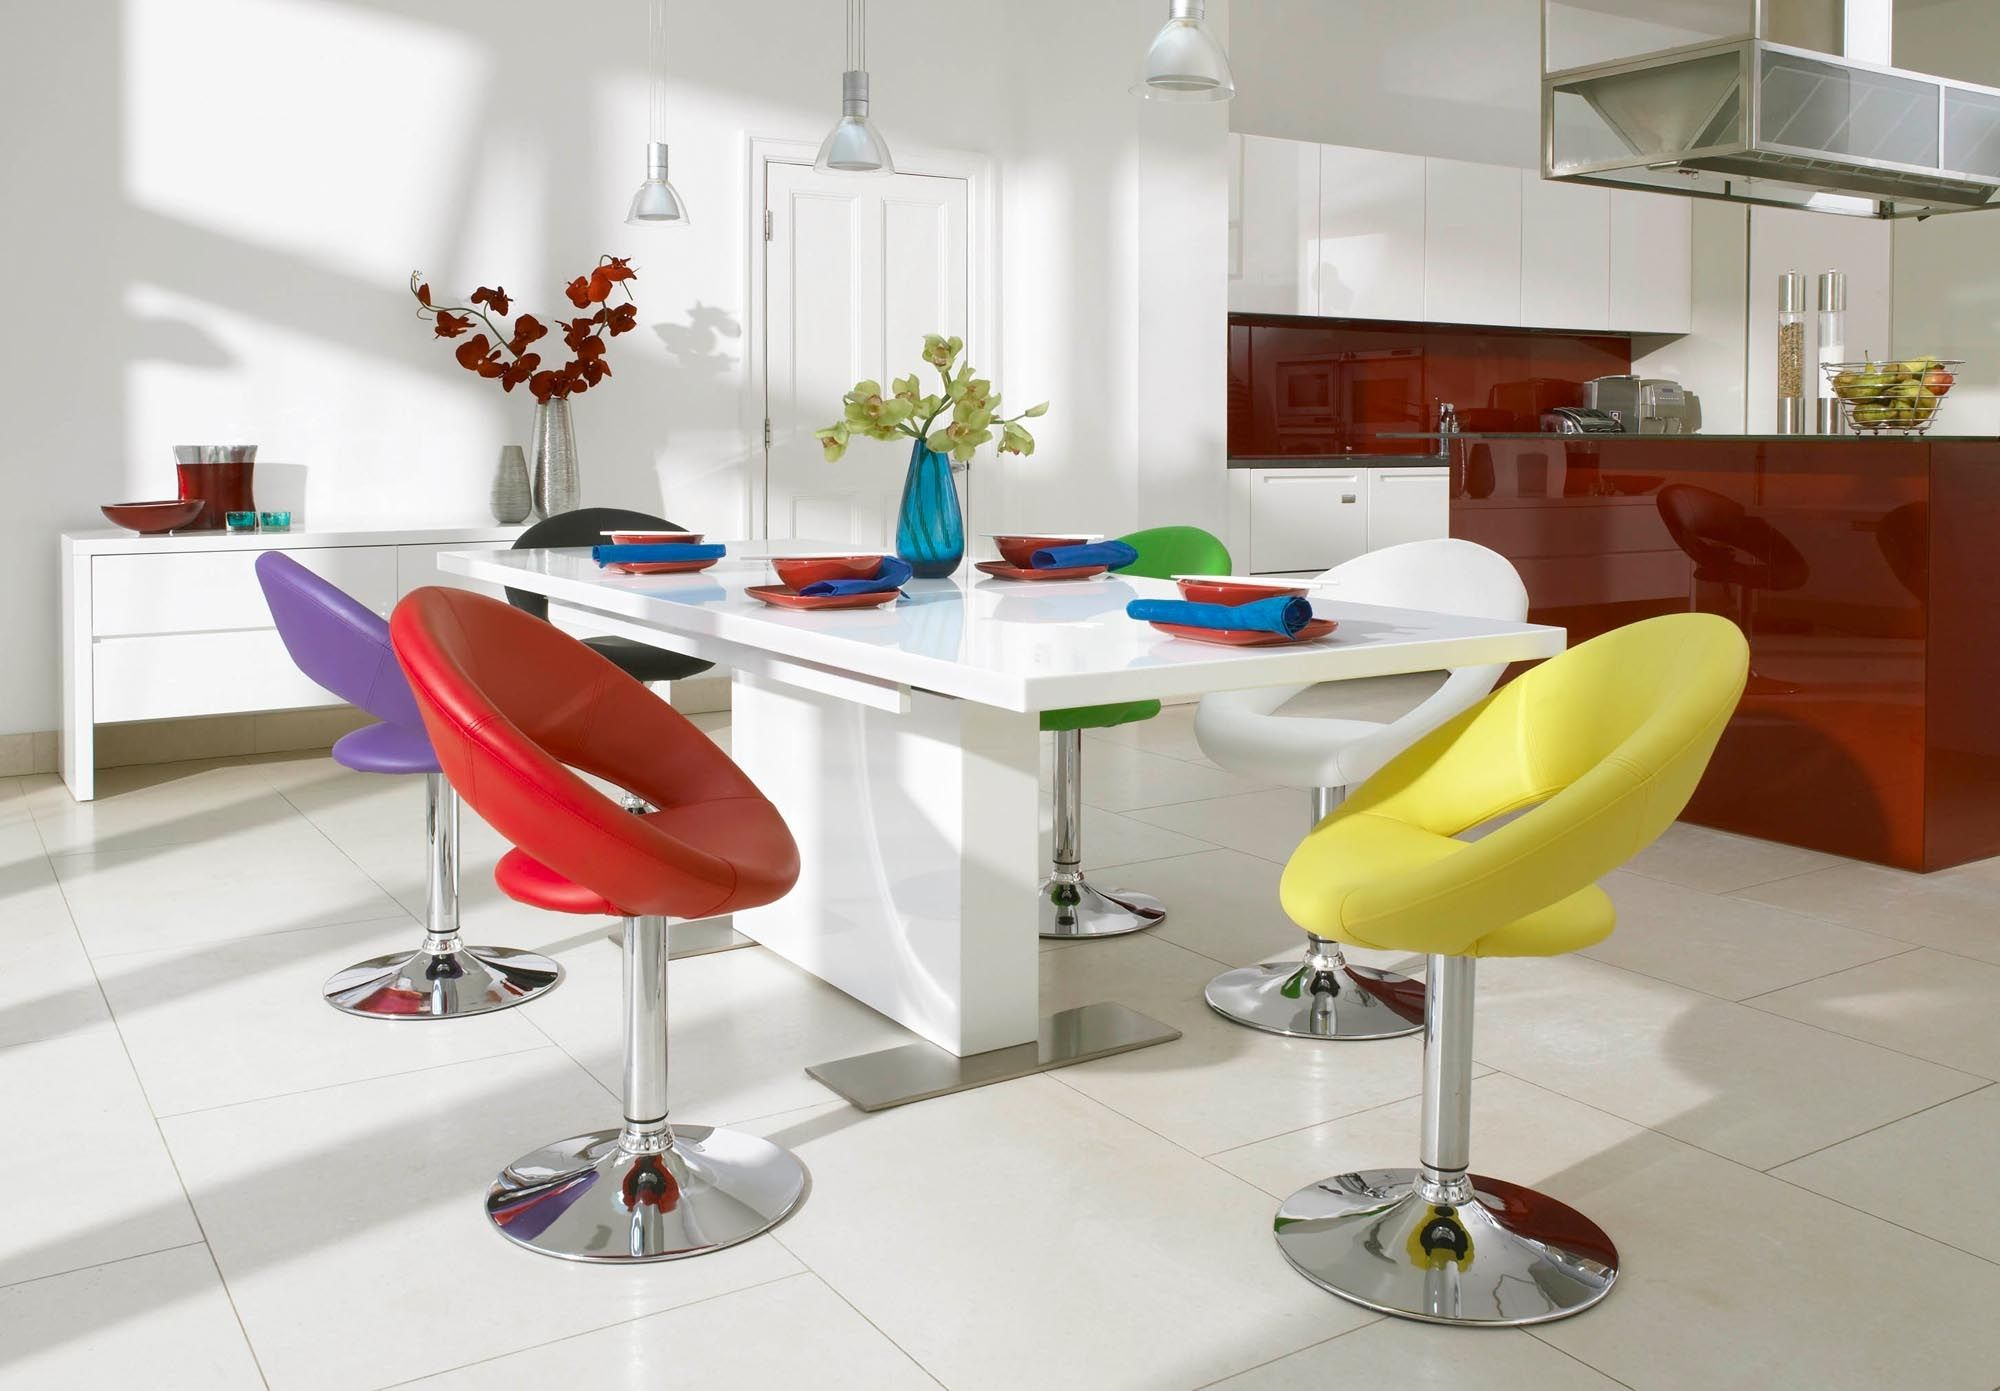 swivel kitchen chairs Plump swivel chair Tank Dining Tables Chairs Dining Room Furniture Furniture Village